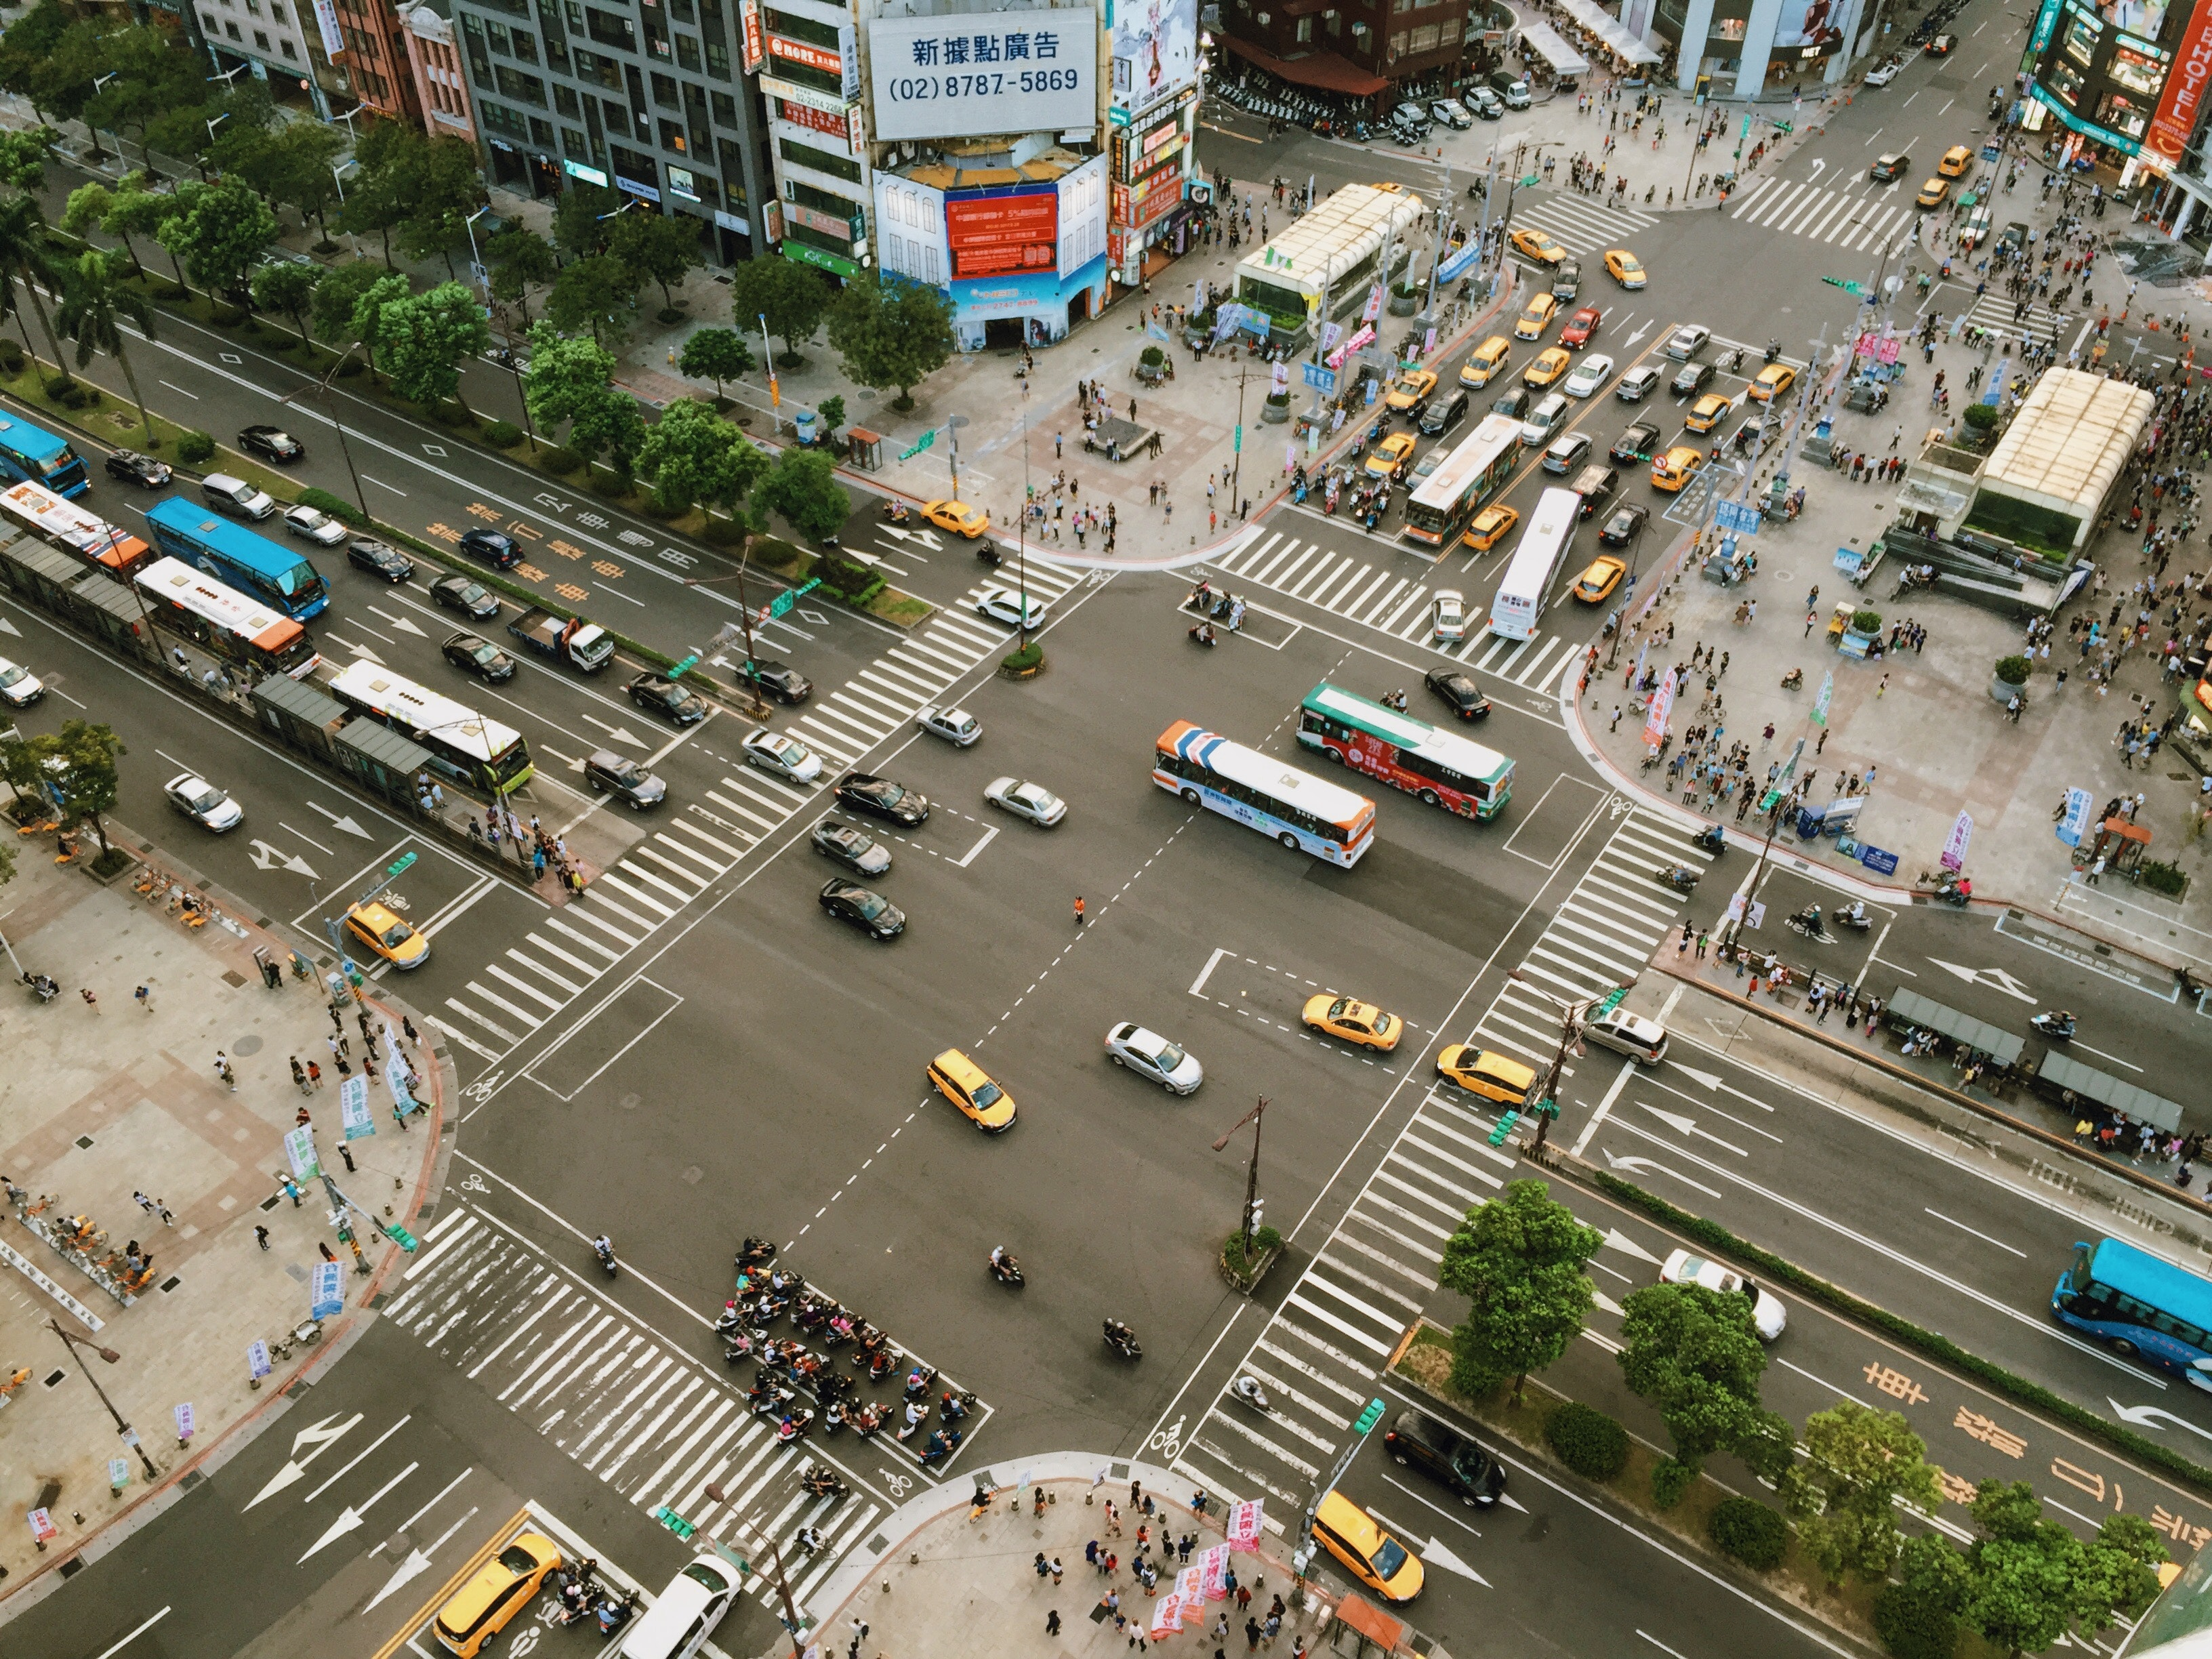 Aerial Photography of Cars on Road Intersection, Motion, Vehicles, Vehicle, Urban, HQ Photo